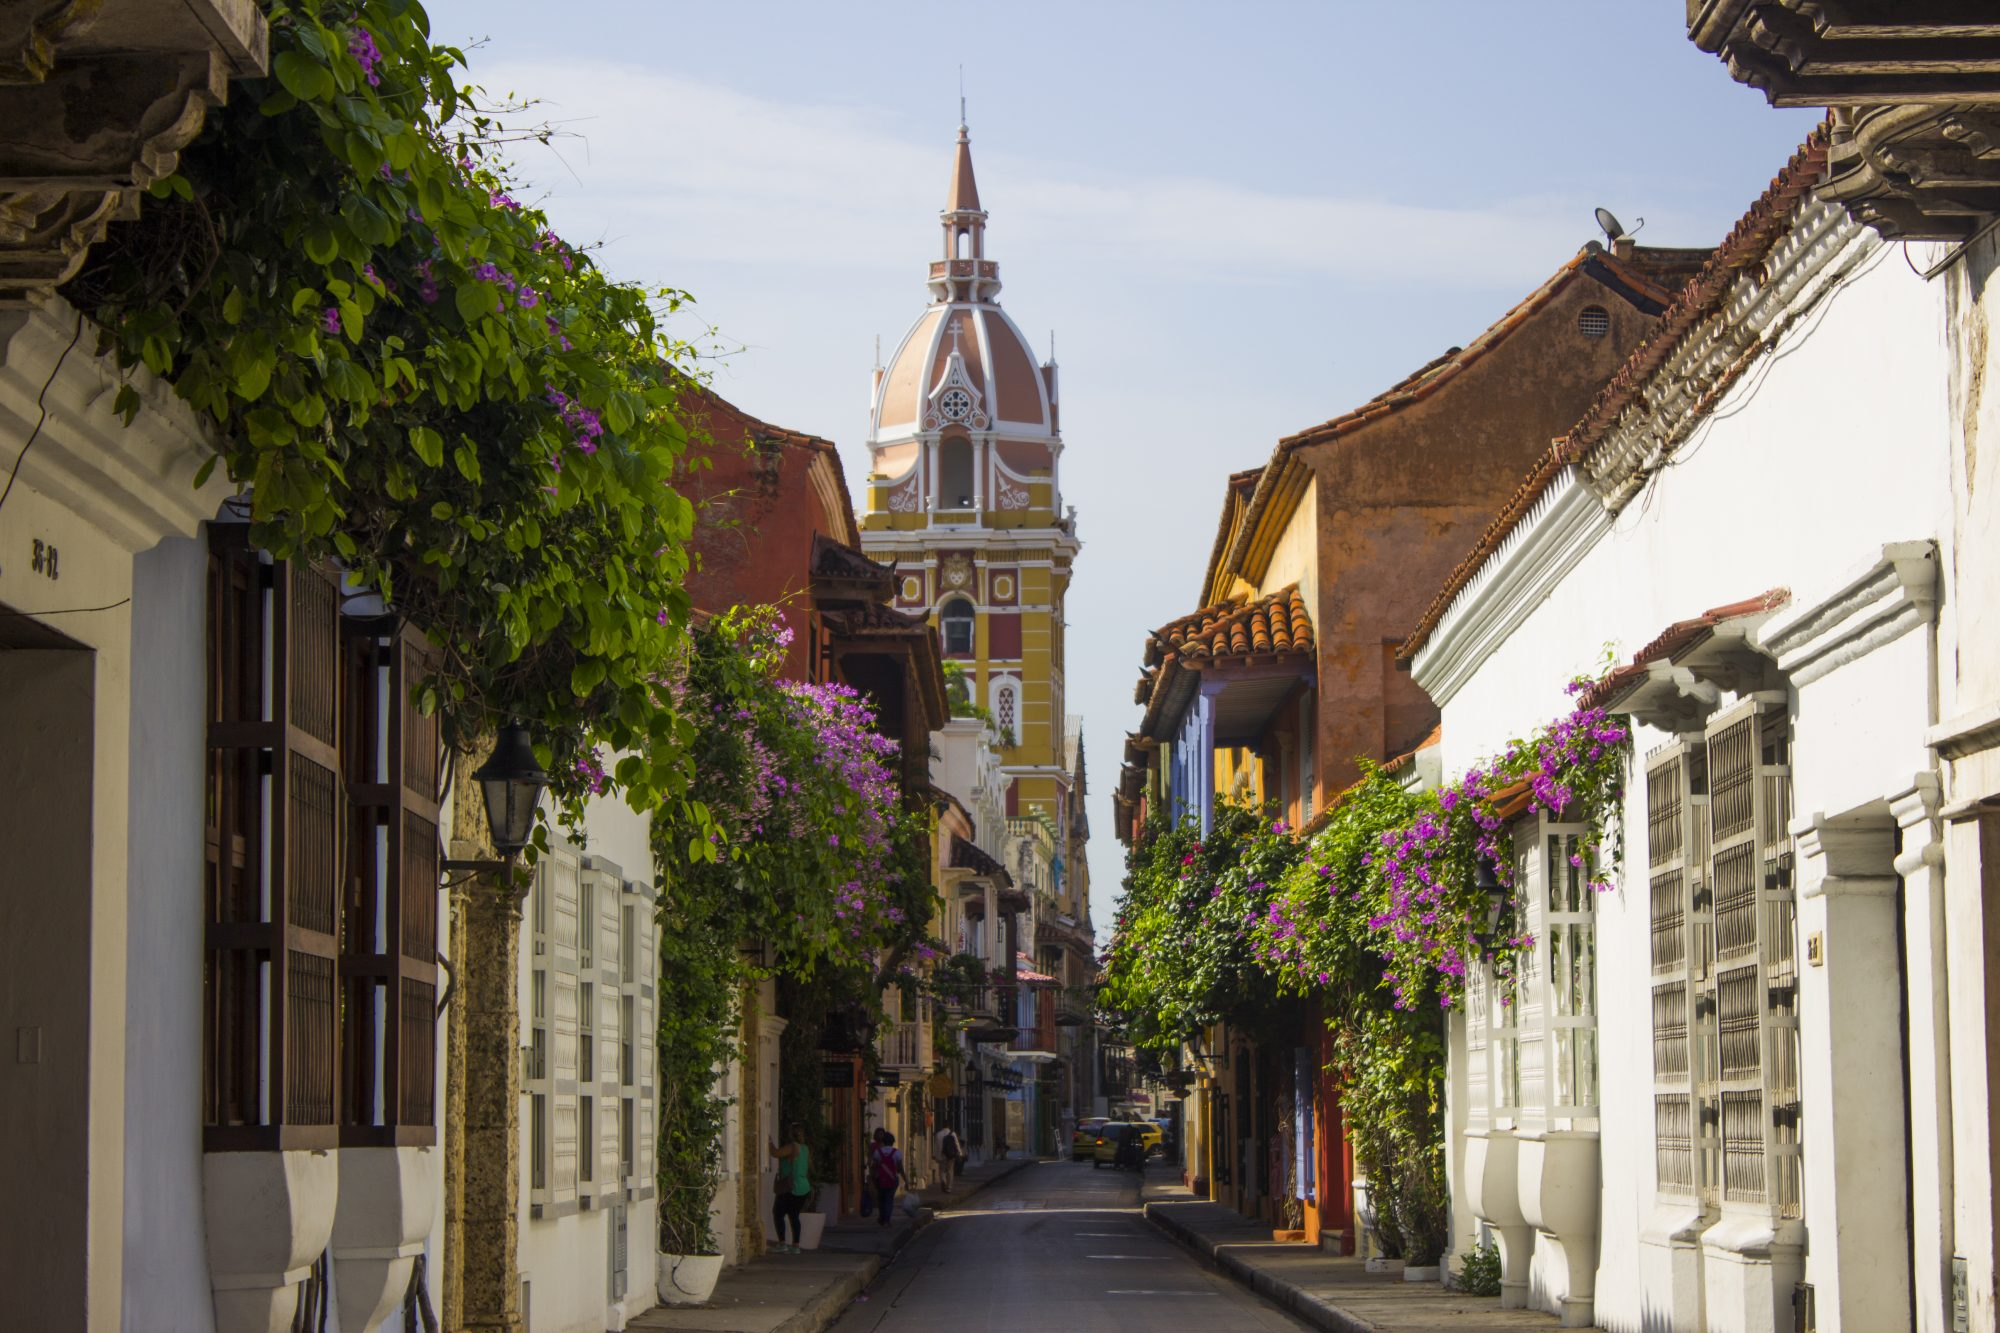 A sunny day in the colonial streets of the city of Cartagena